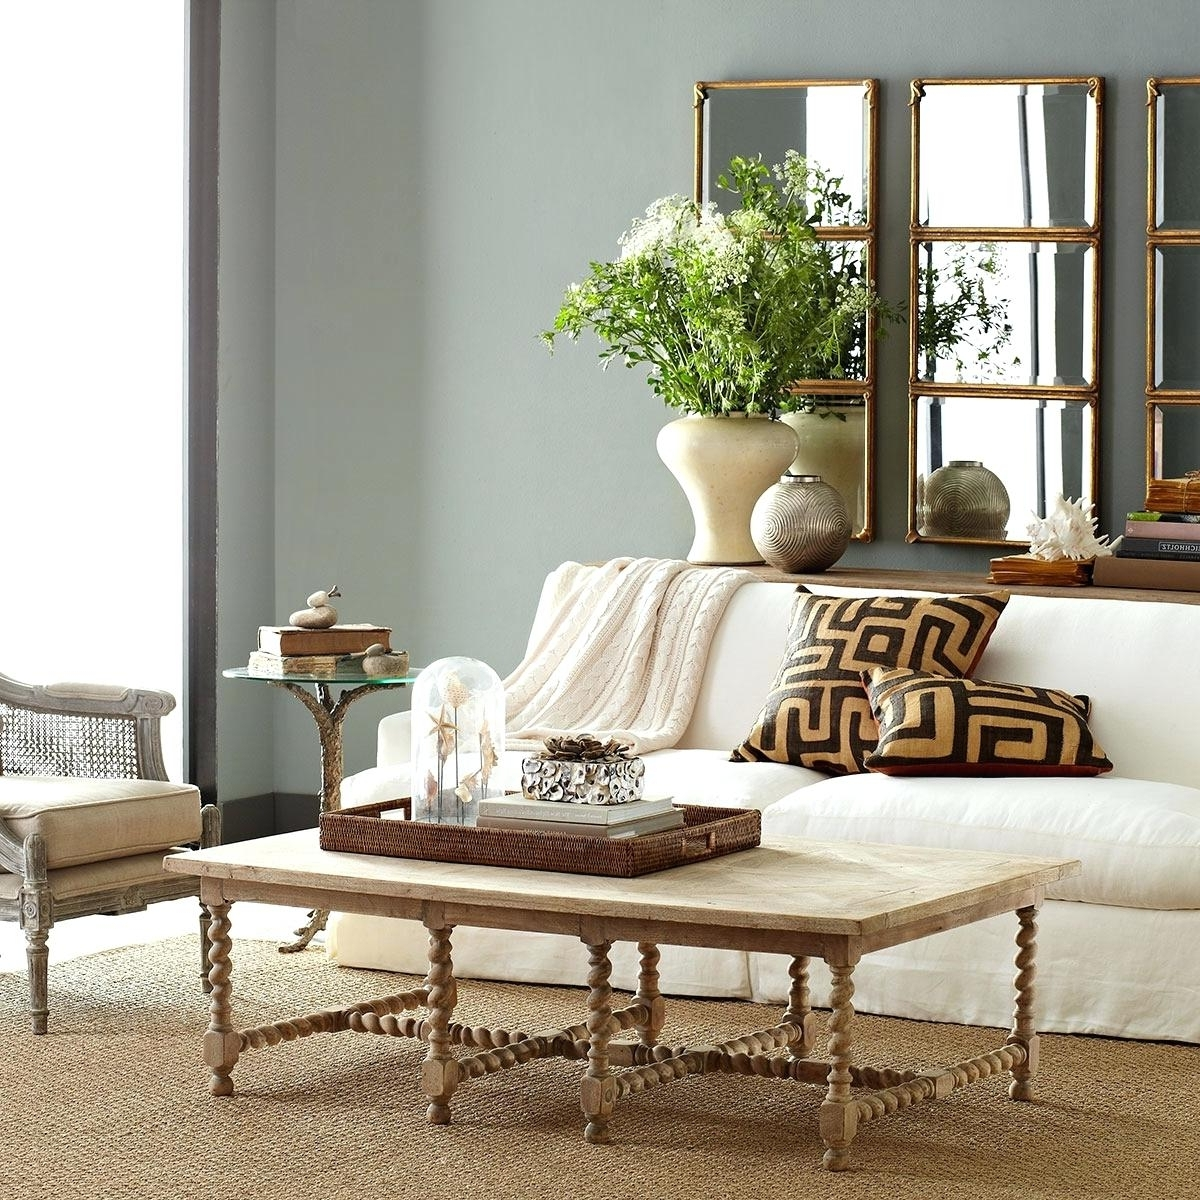 Preferred Disappearing Coffee Tables Intended For Wisteria Coffee Table Wisteria Waterfall Coffee Table Wisteria (View 6 of 20)